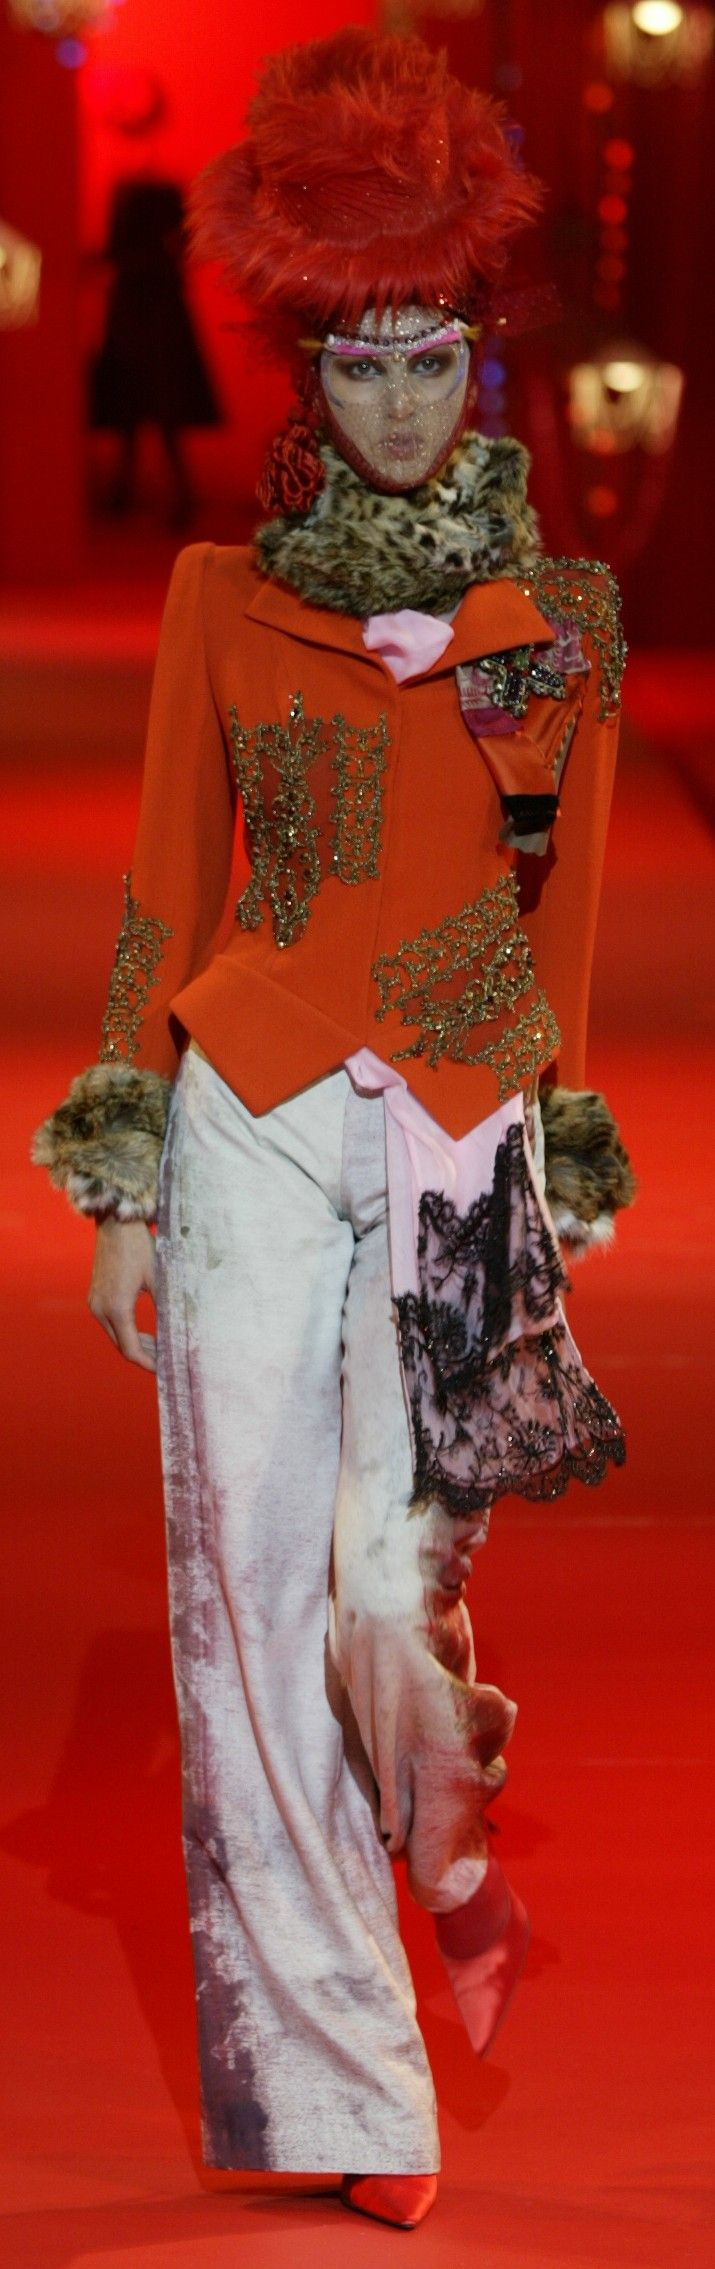 ~Christian Lacroix Haute Couture Autumn Winter 2002 | The House of Beccaria#